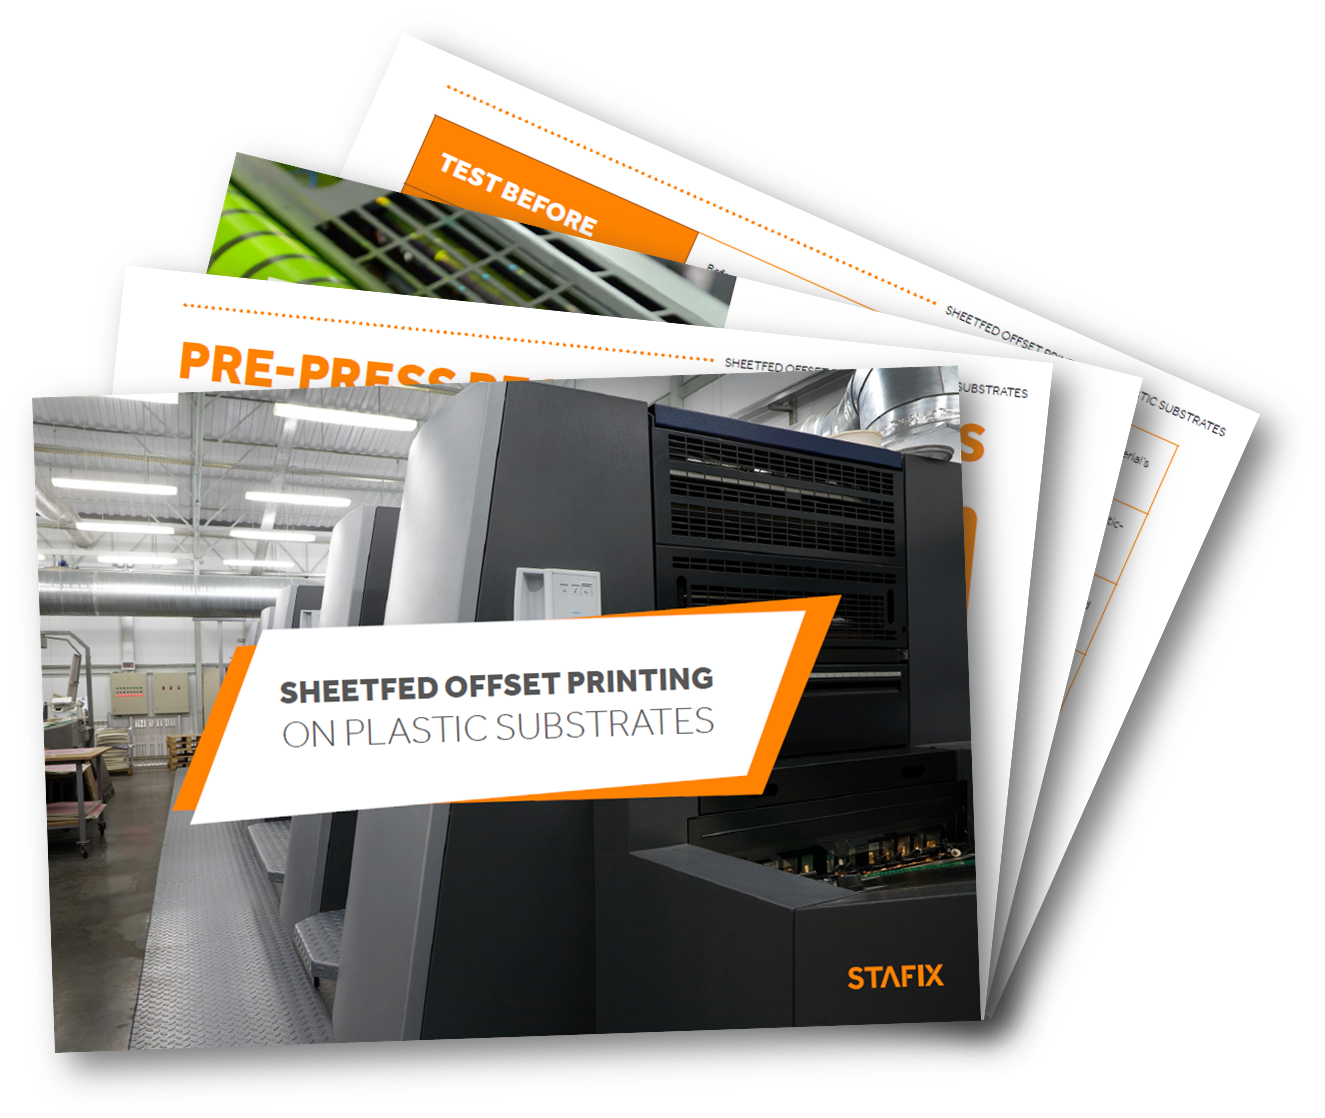 Sheetfed offset printing on plastic substrates